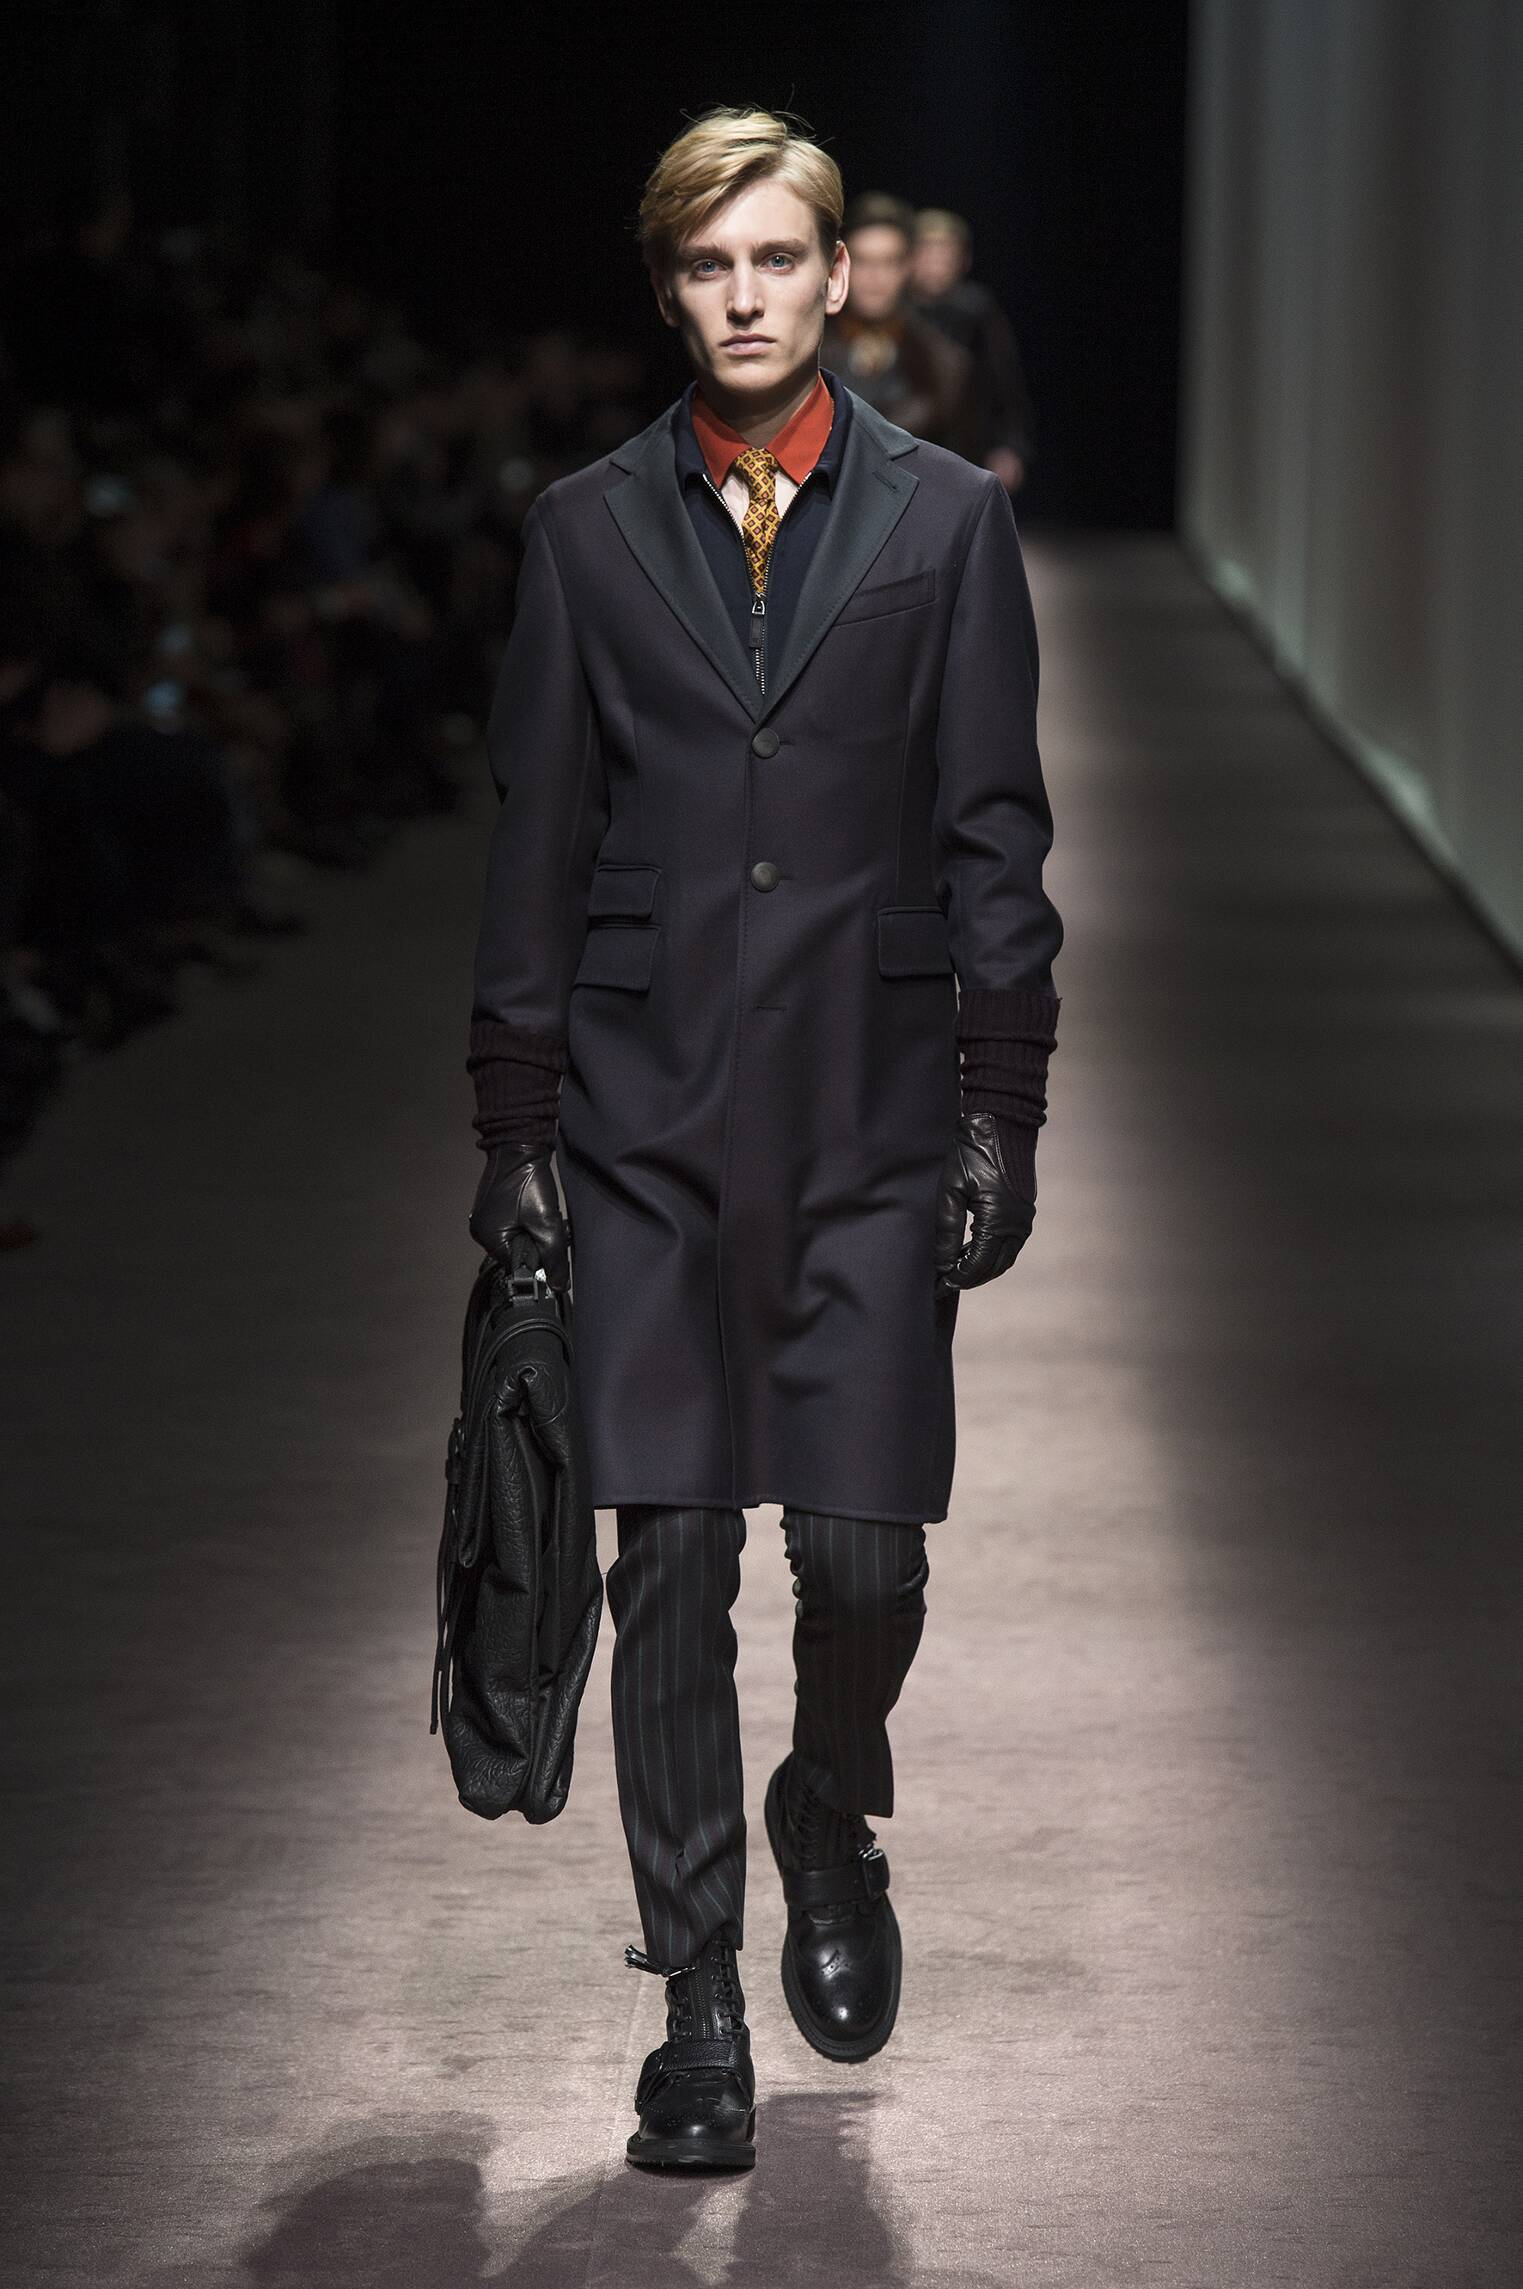 Fashion Model Canali Catwalk